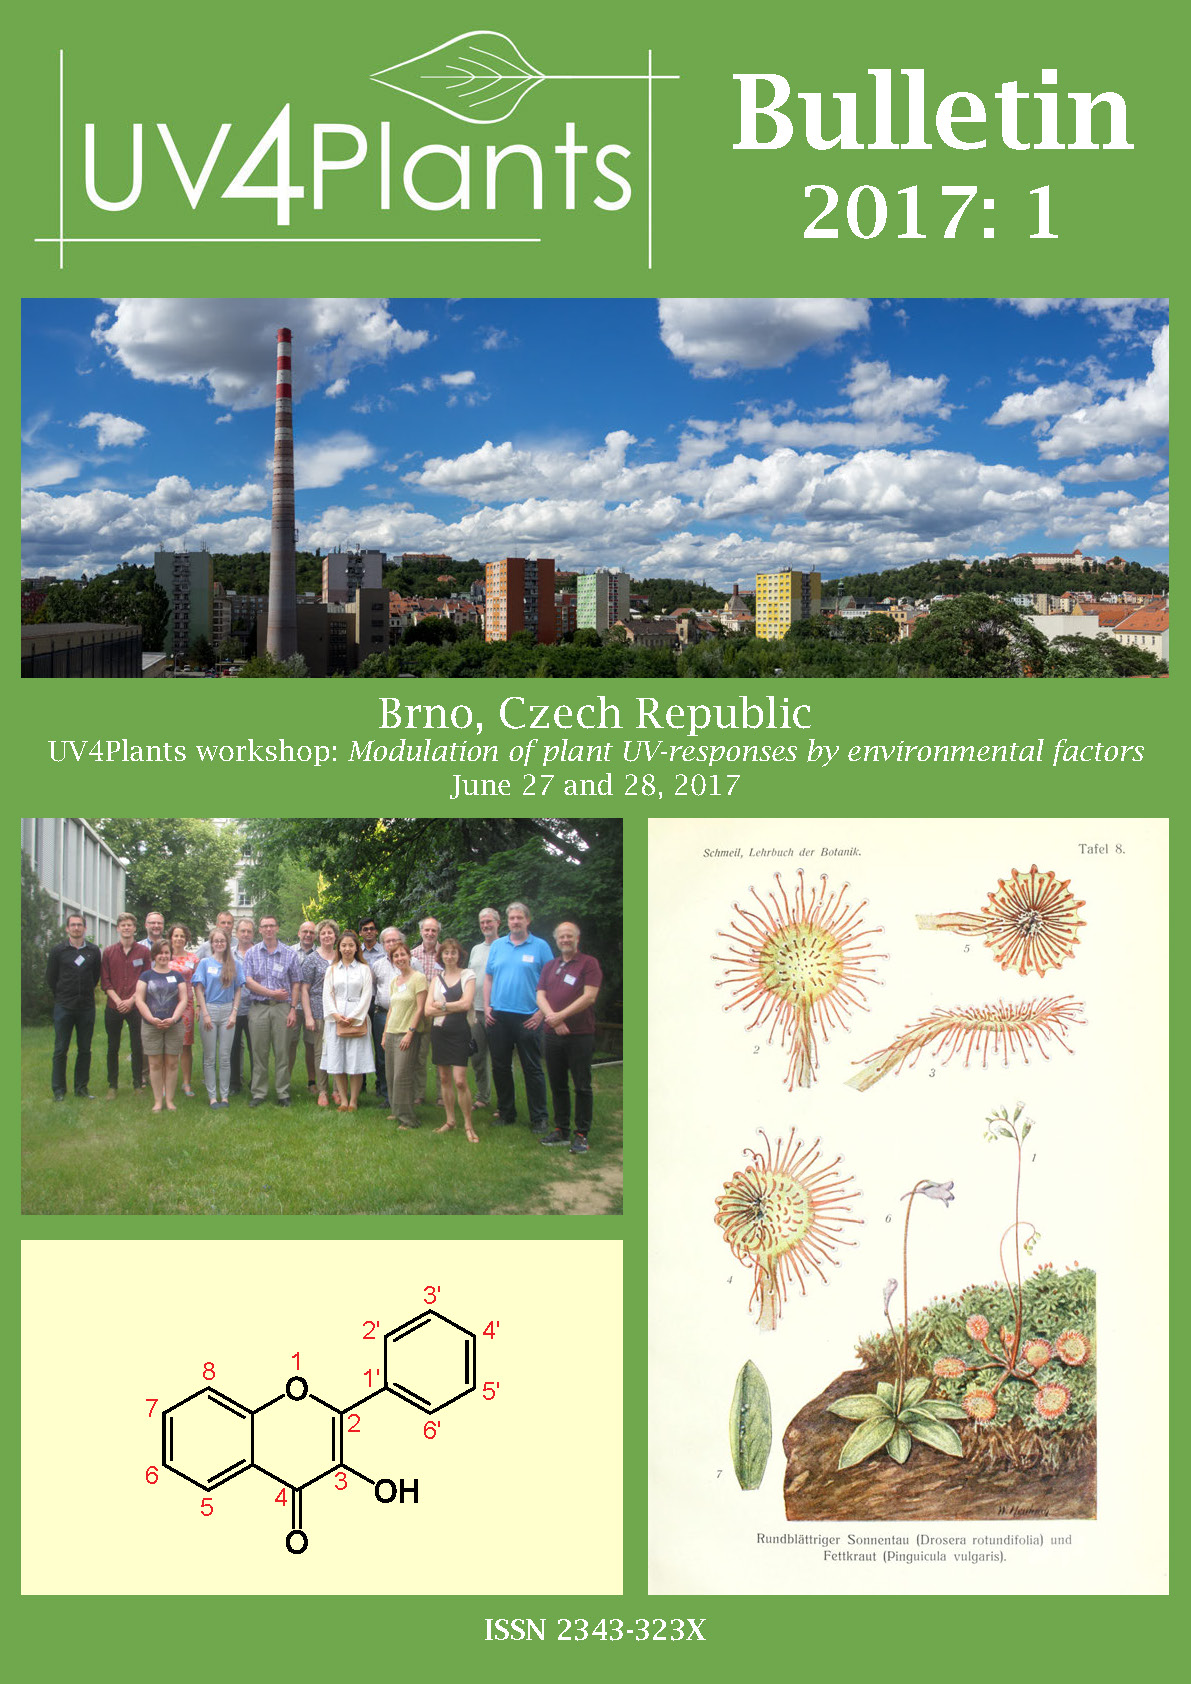 Cover of UV4Plants Bulletin 2017:1